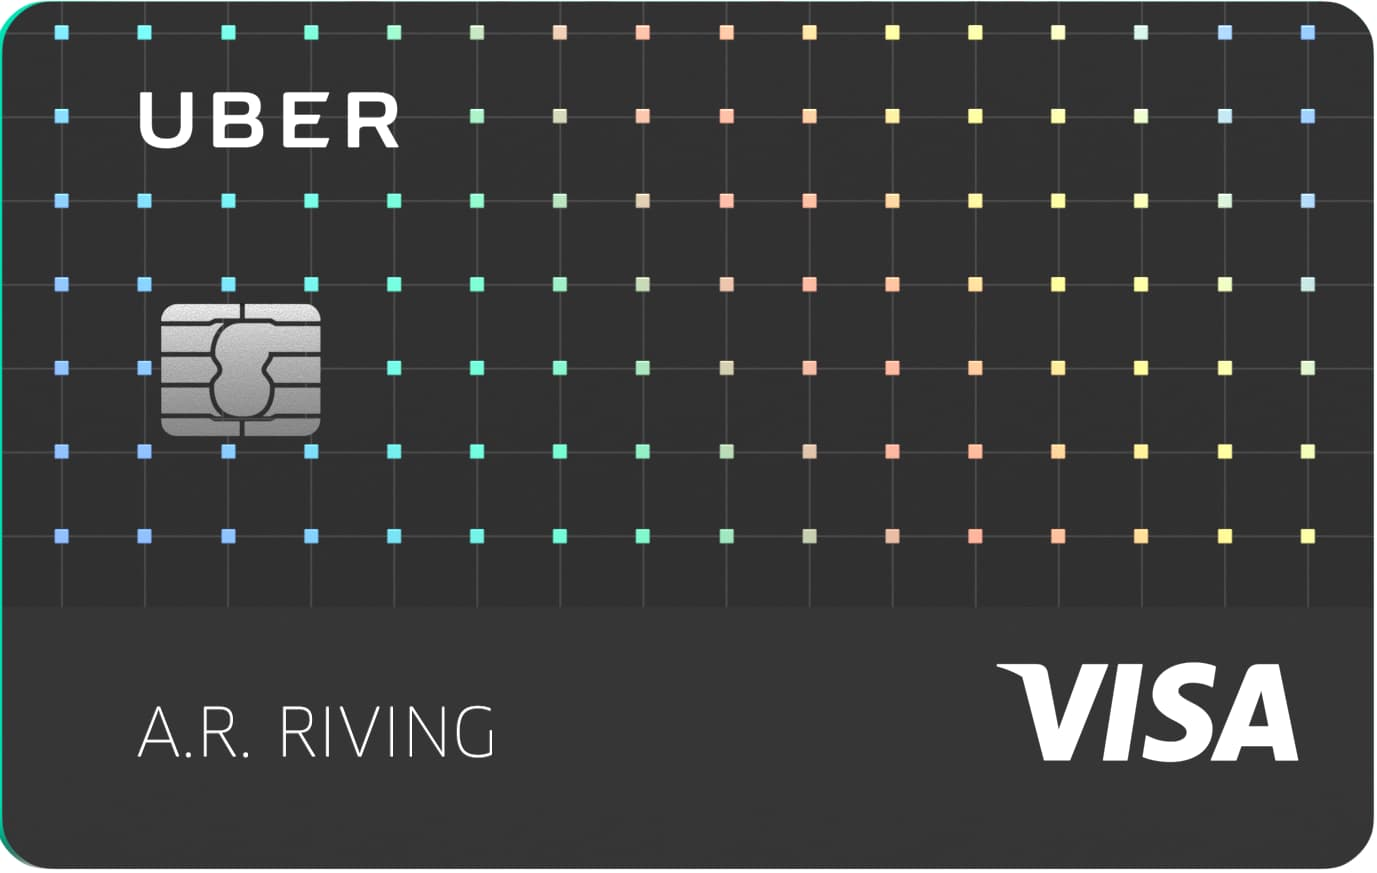 Credit Cards: Uber Visa Card